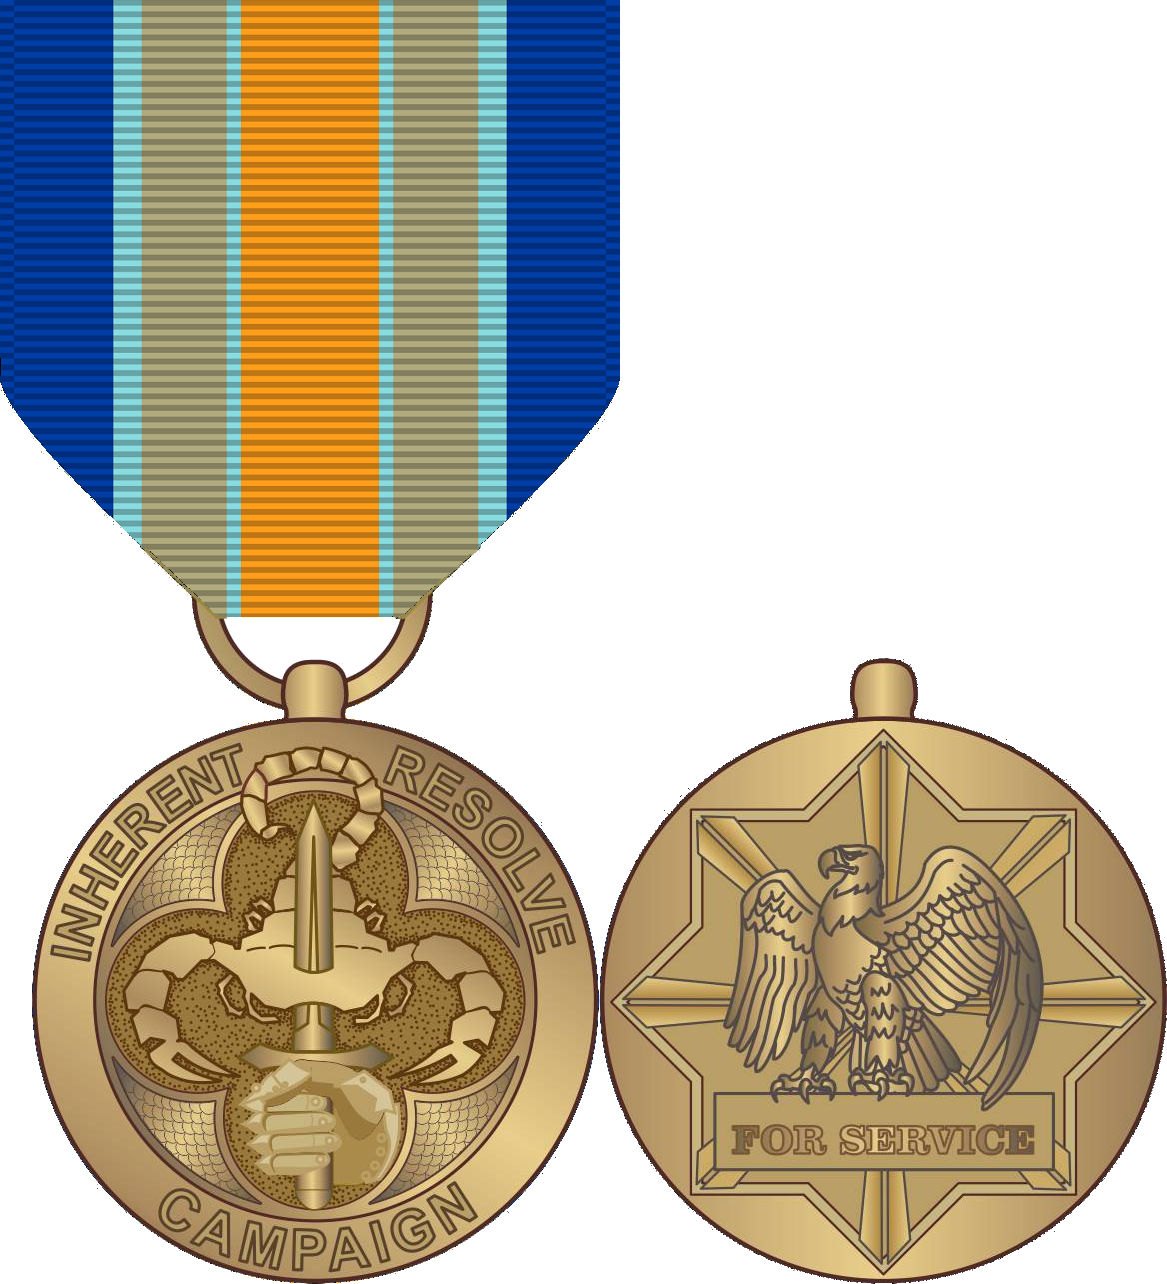 Inherent Resolve Campaign Medal - Wikipedia